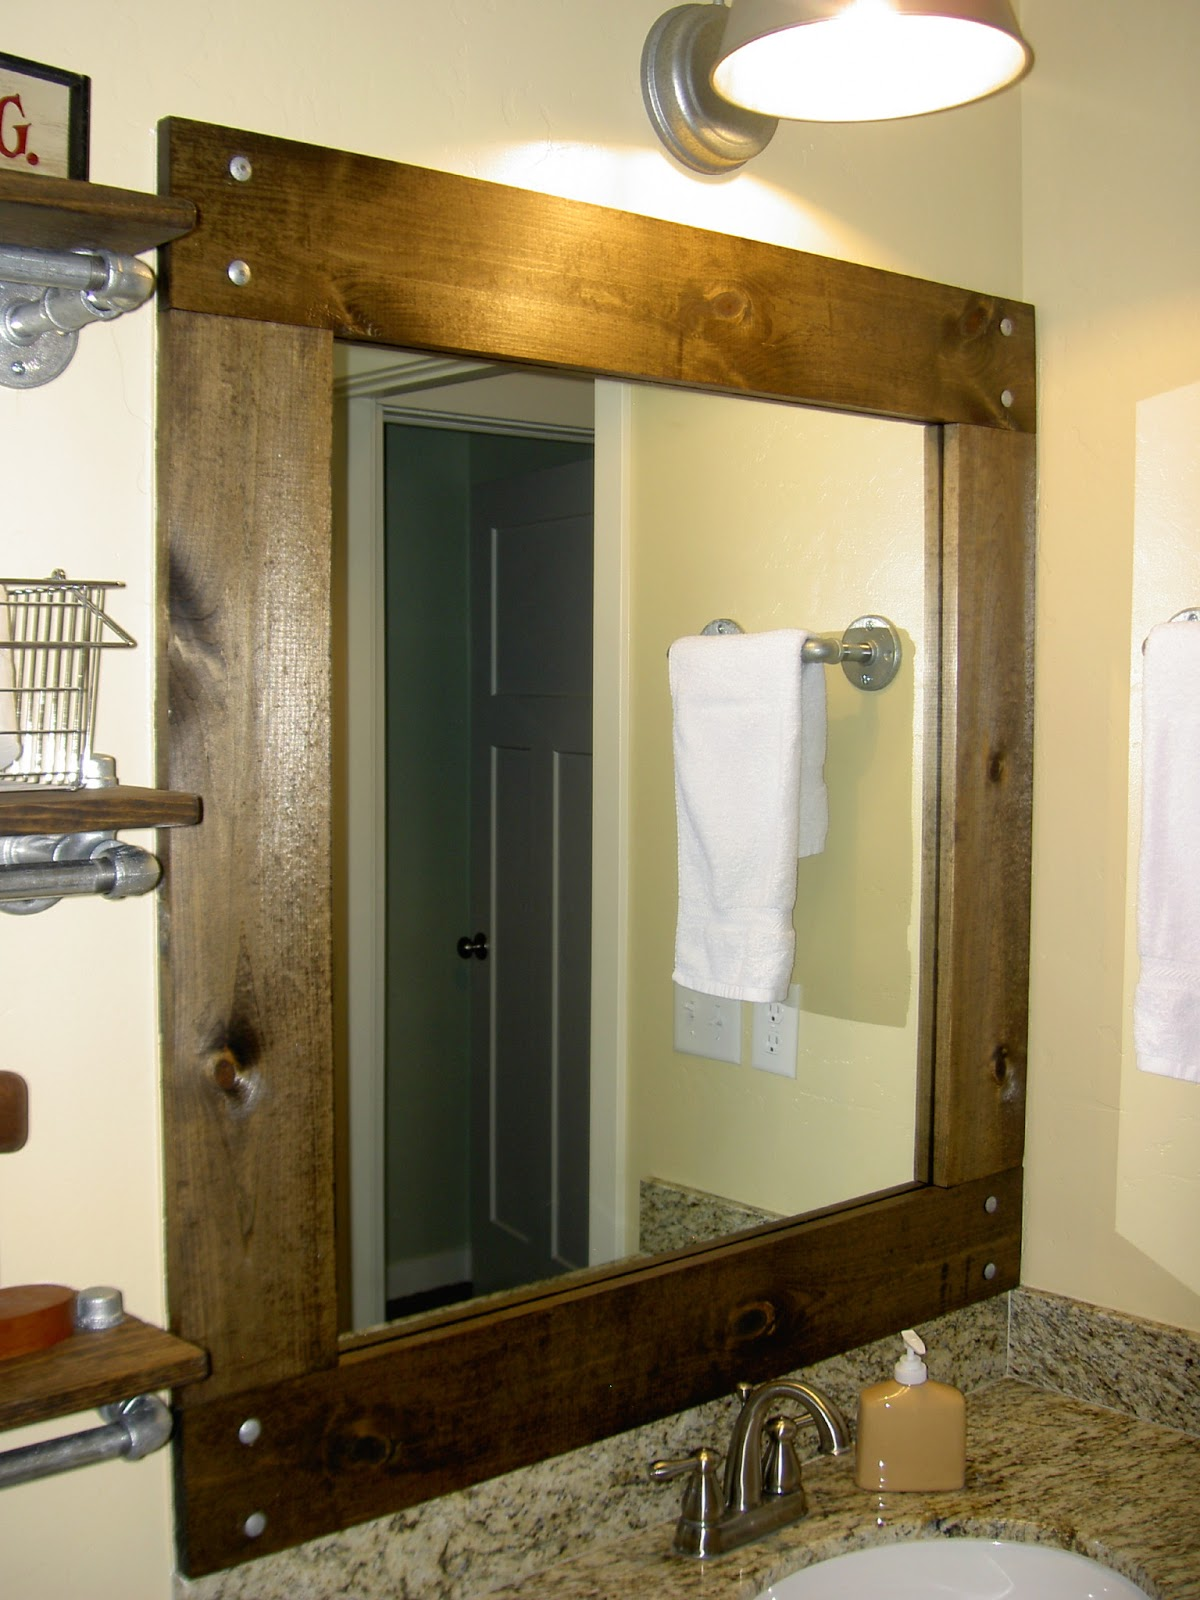 Chapman place framed bathroom mirror Frames for bathroom wall mirrors